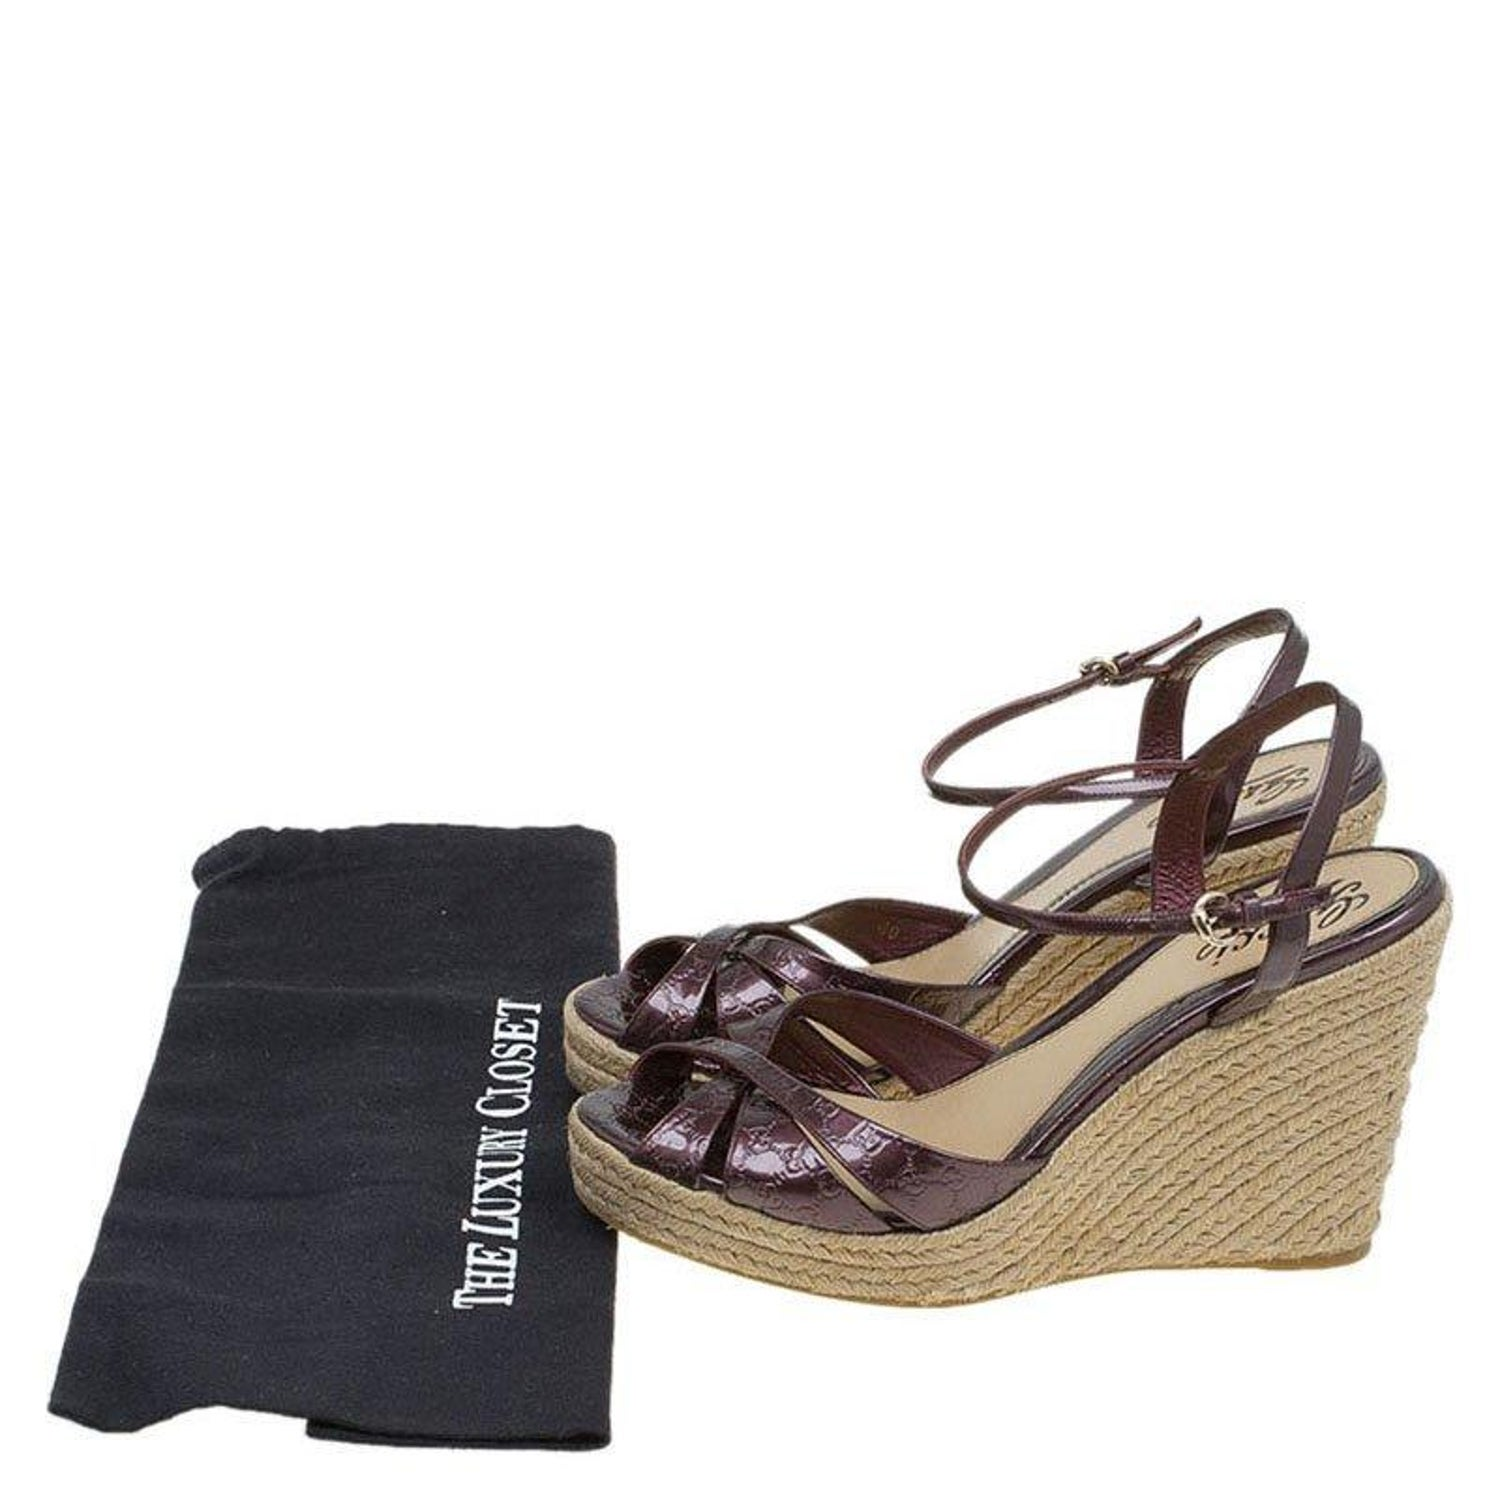 6a9f55009ac2 Gucci Plum Purple Patent Micro Guccissima Penelope Espadrille Wedges Size  40 For Sale at 1stdibs